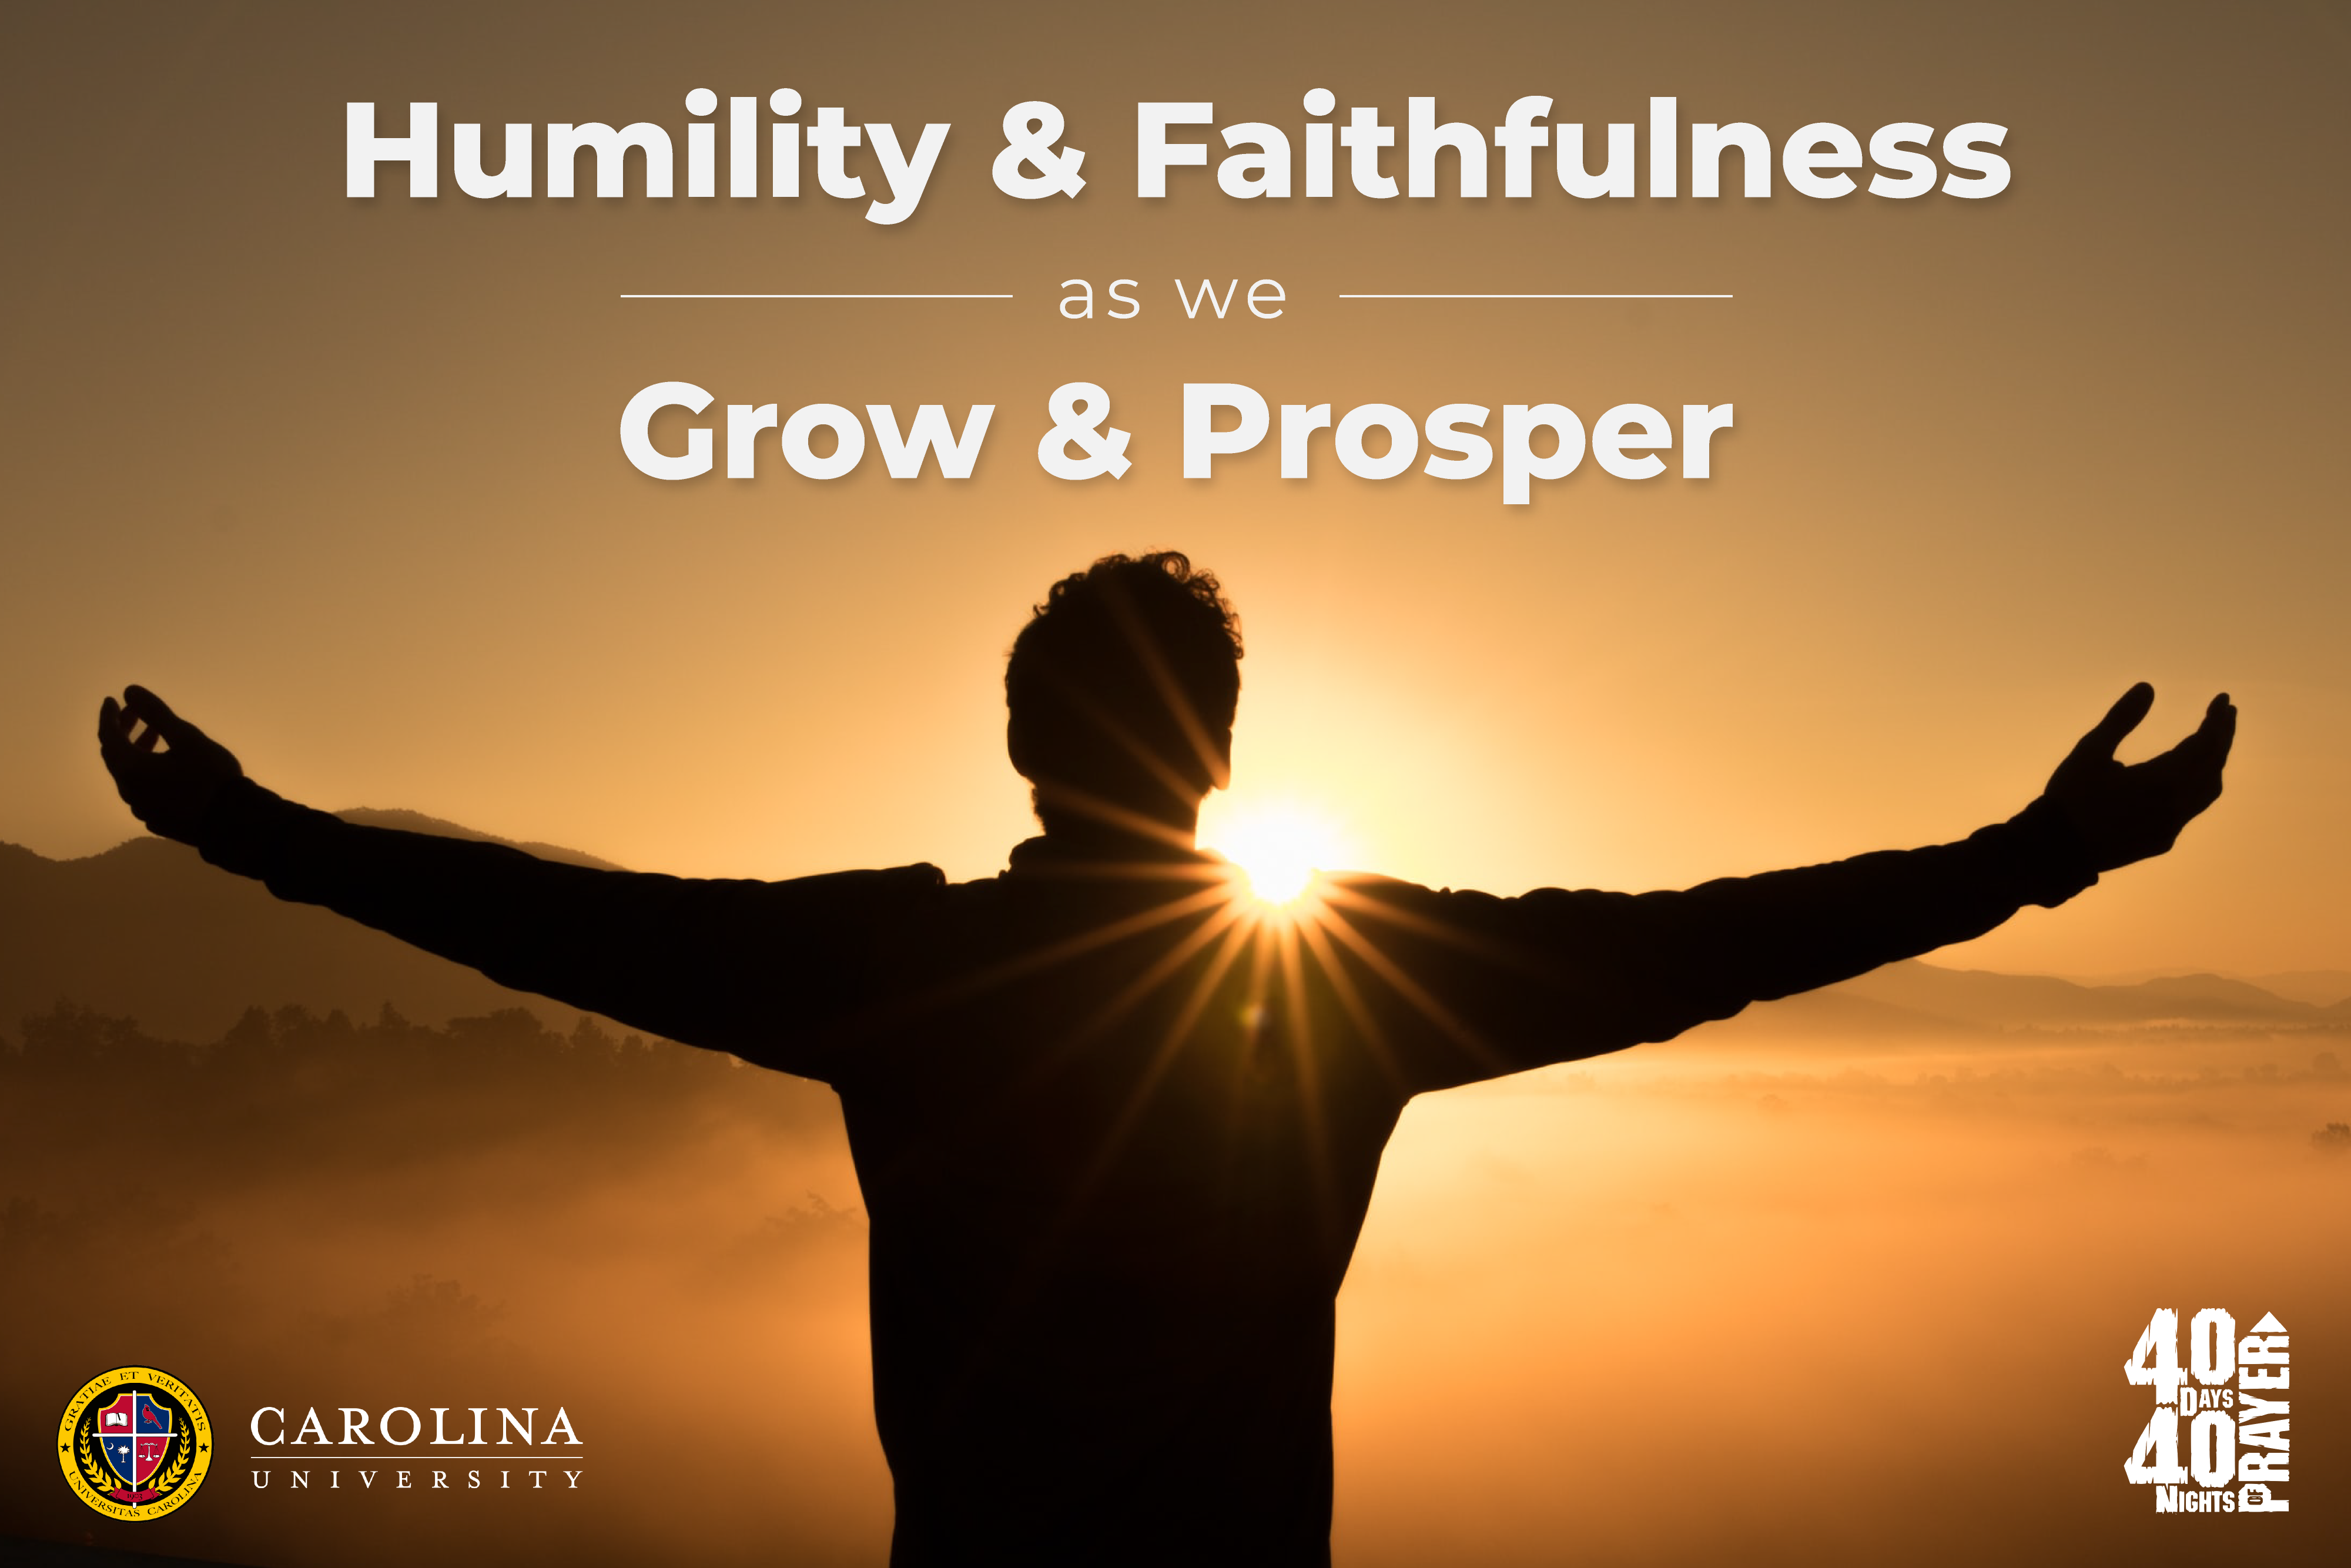 40 days and 40 nights of prayer at Carolina University: Humility & Faithfulness as we Grow and Prosper